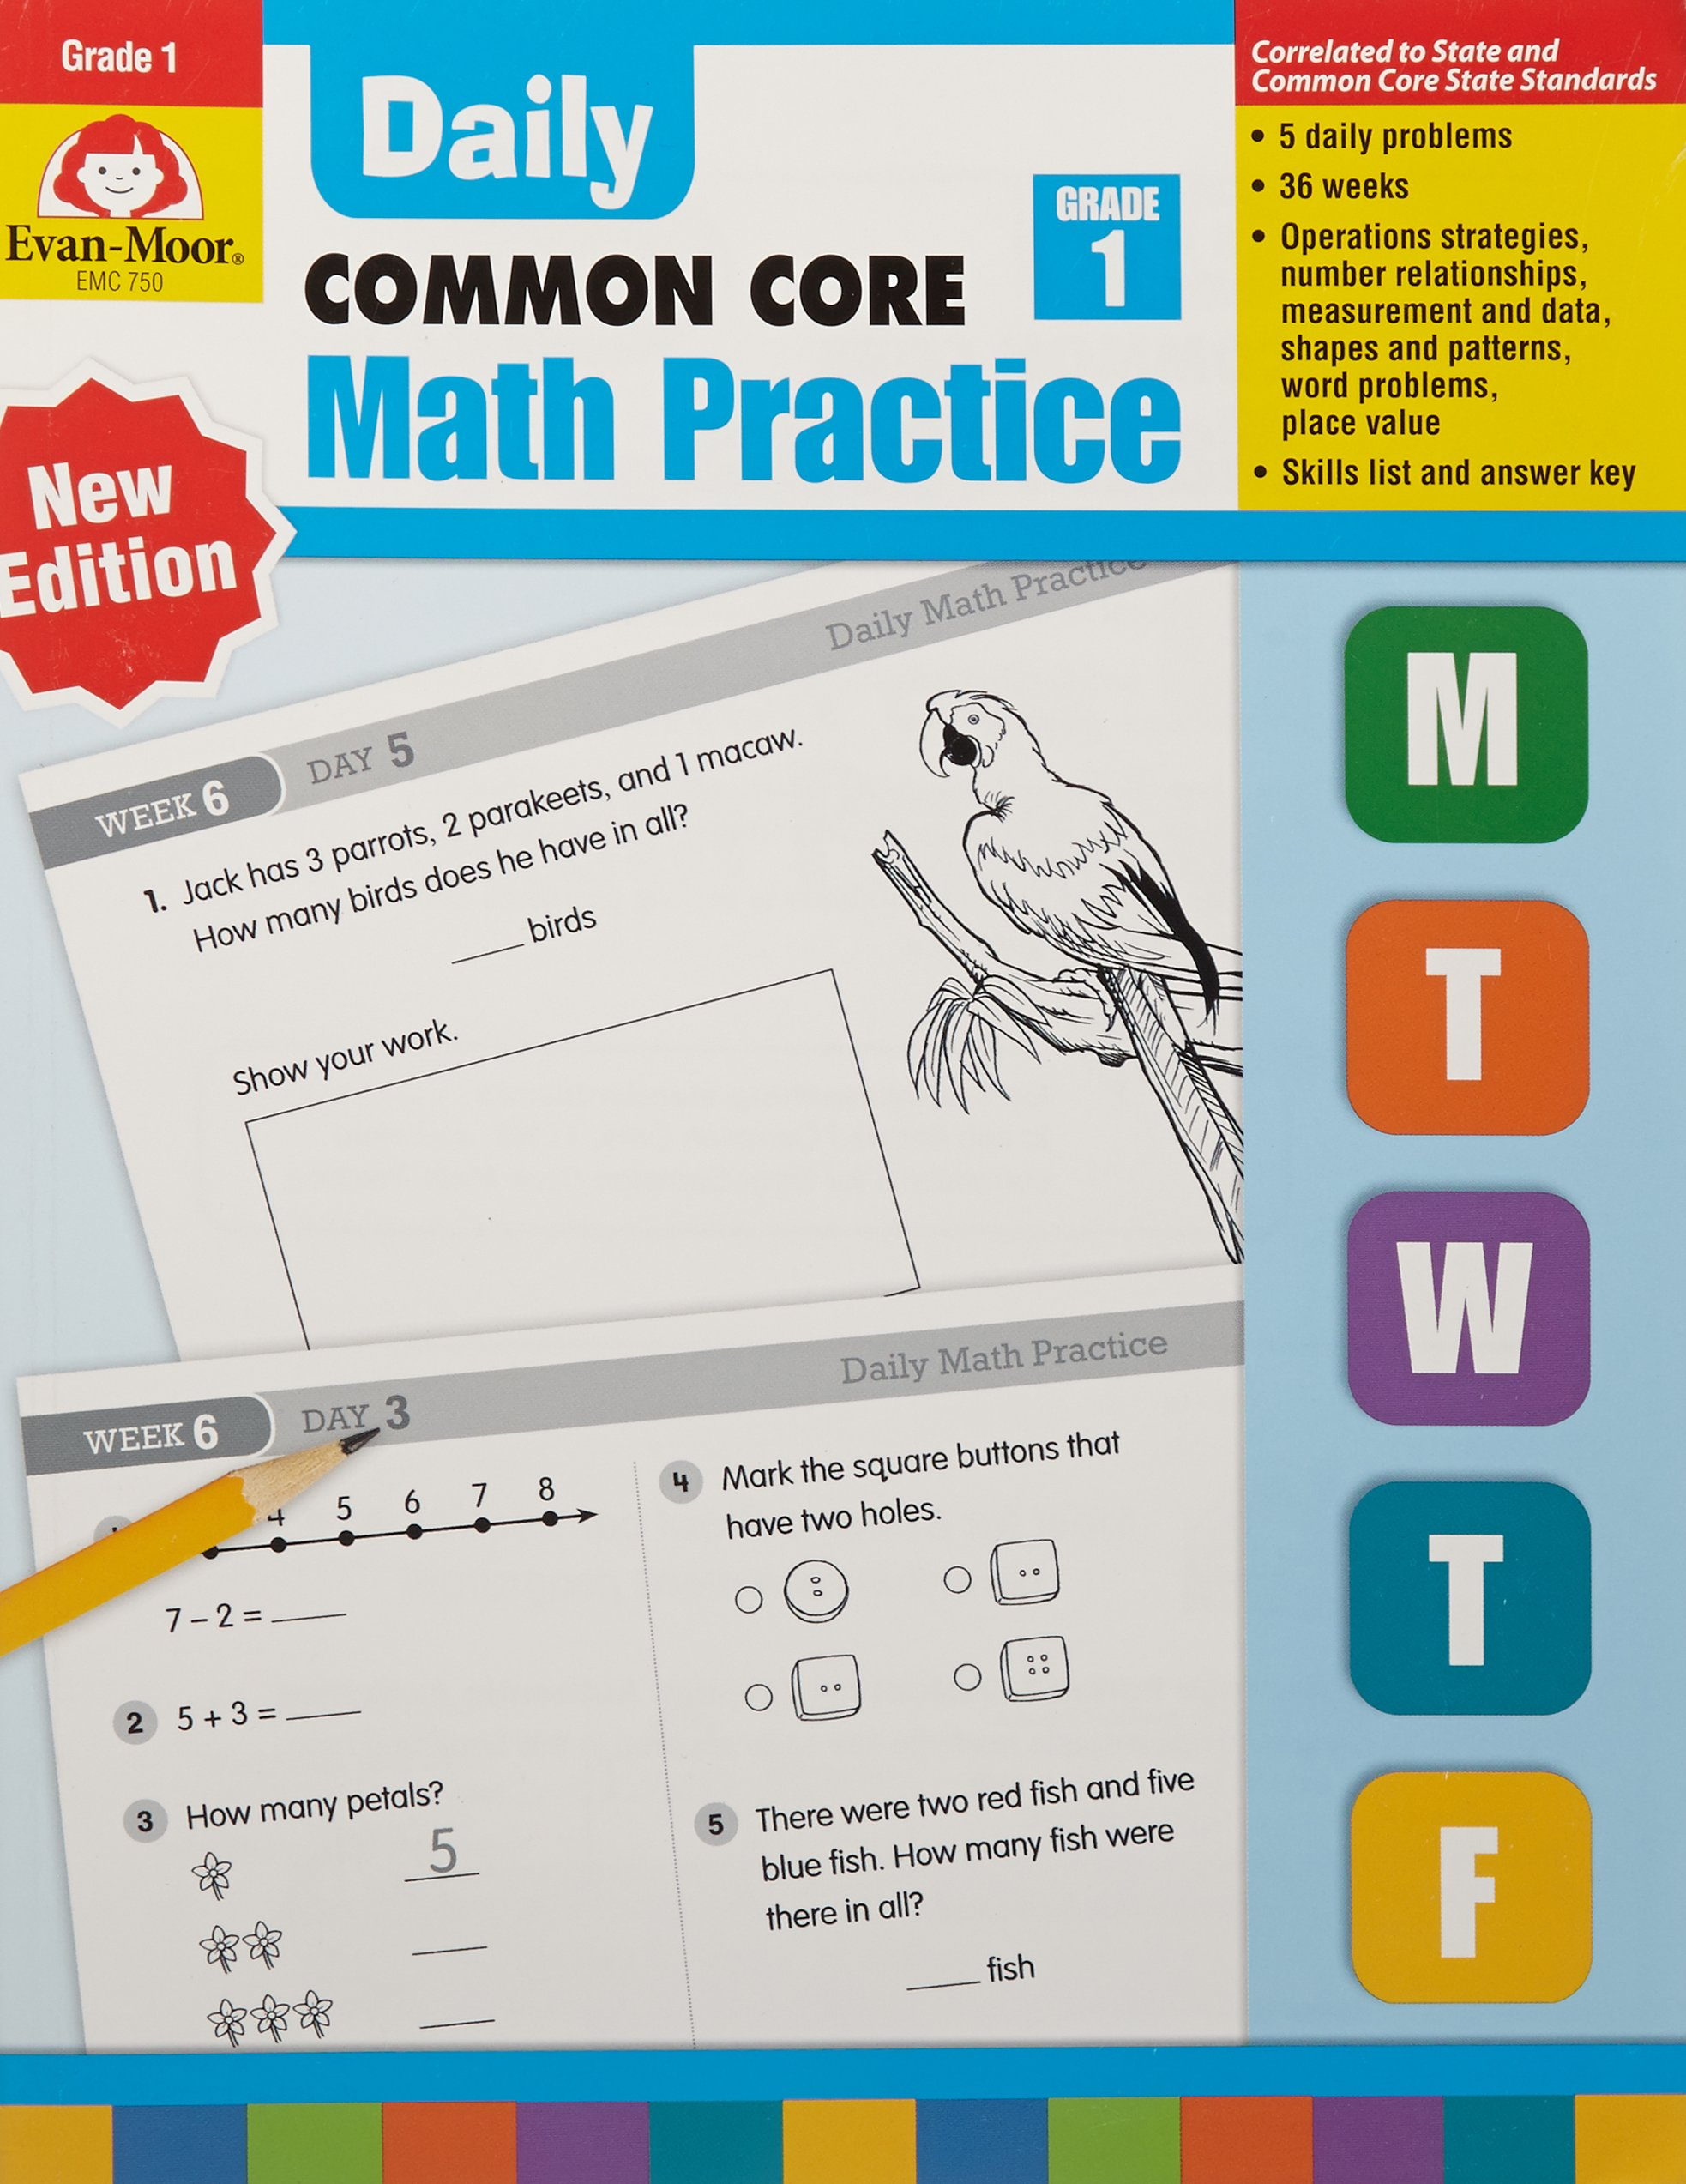 Worksheets Daily Oral Language 5th Grade Worksheets evan moor daily language review practice series grade 2 136 pages of skills with 36 weeks activities m